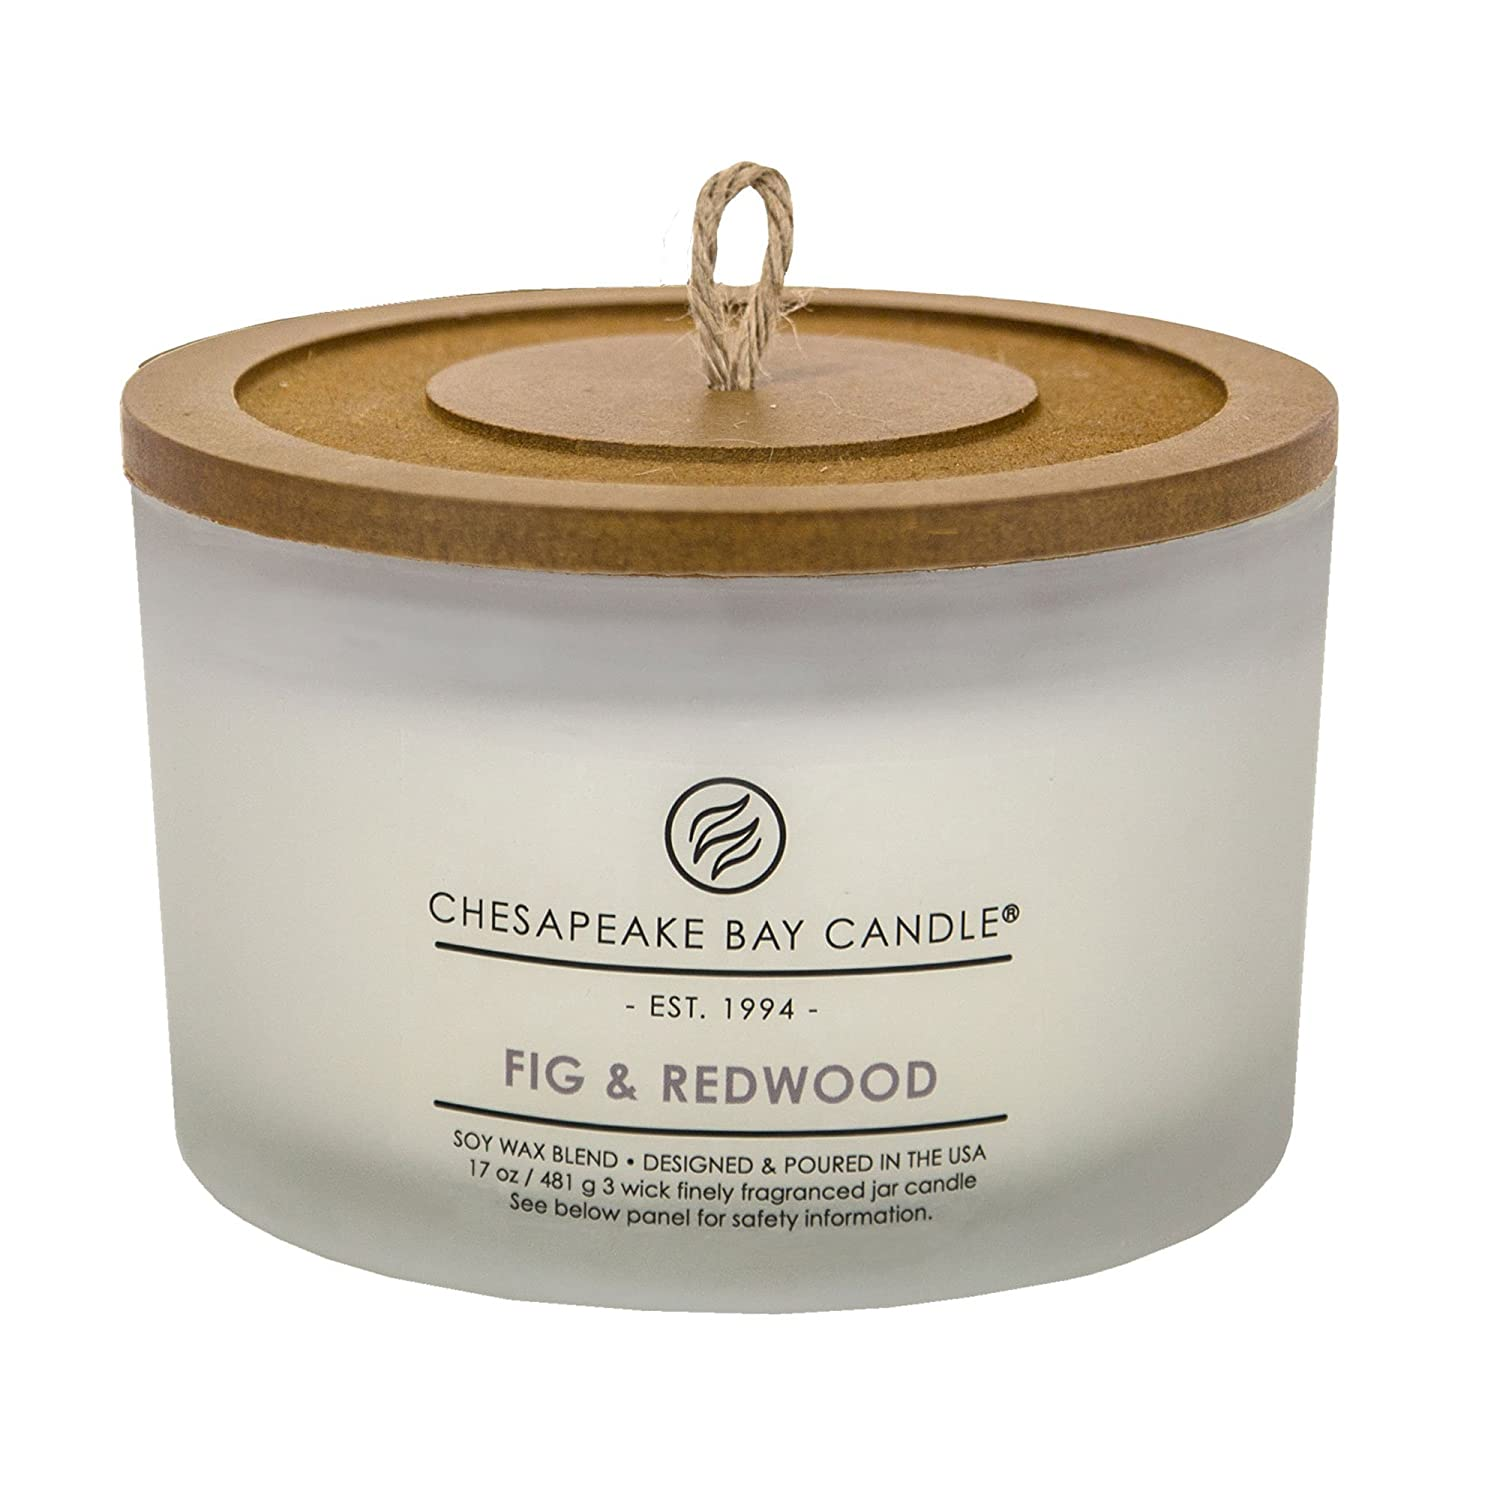 Chesapeake Bay Candle 3-Wick Scented Candle, Fig & Redwood, Coffee Table Jar